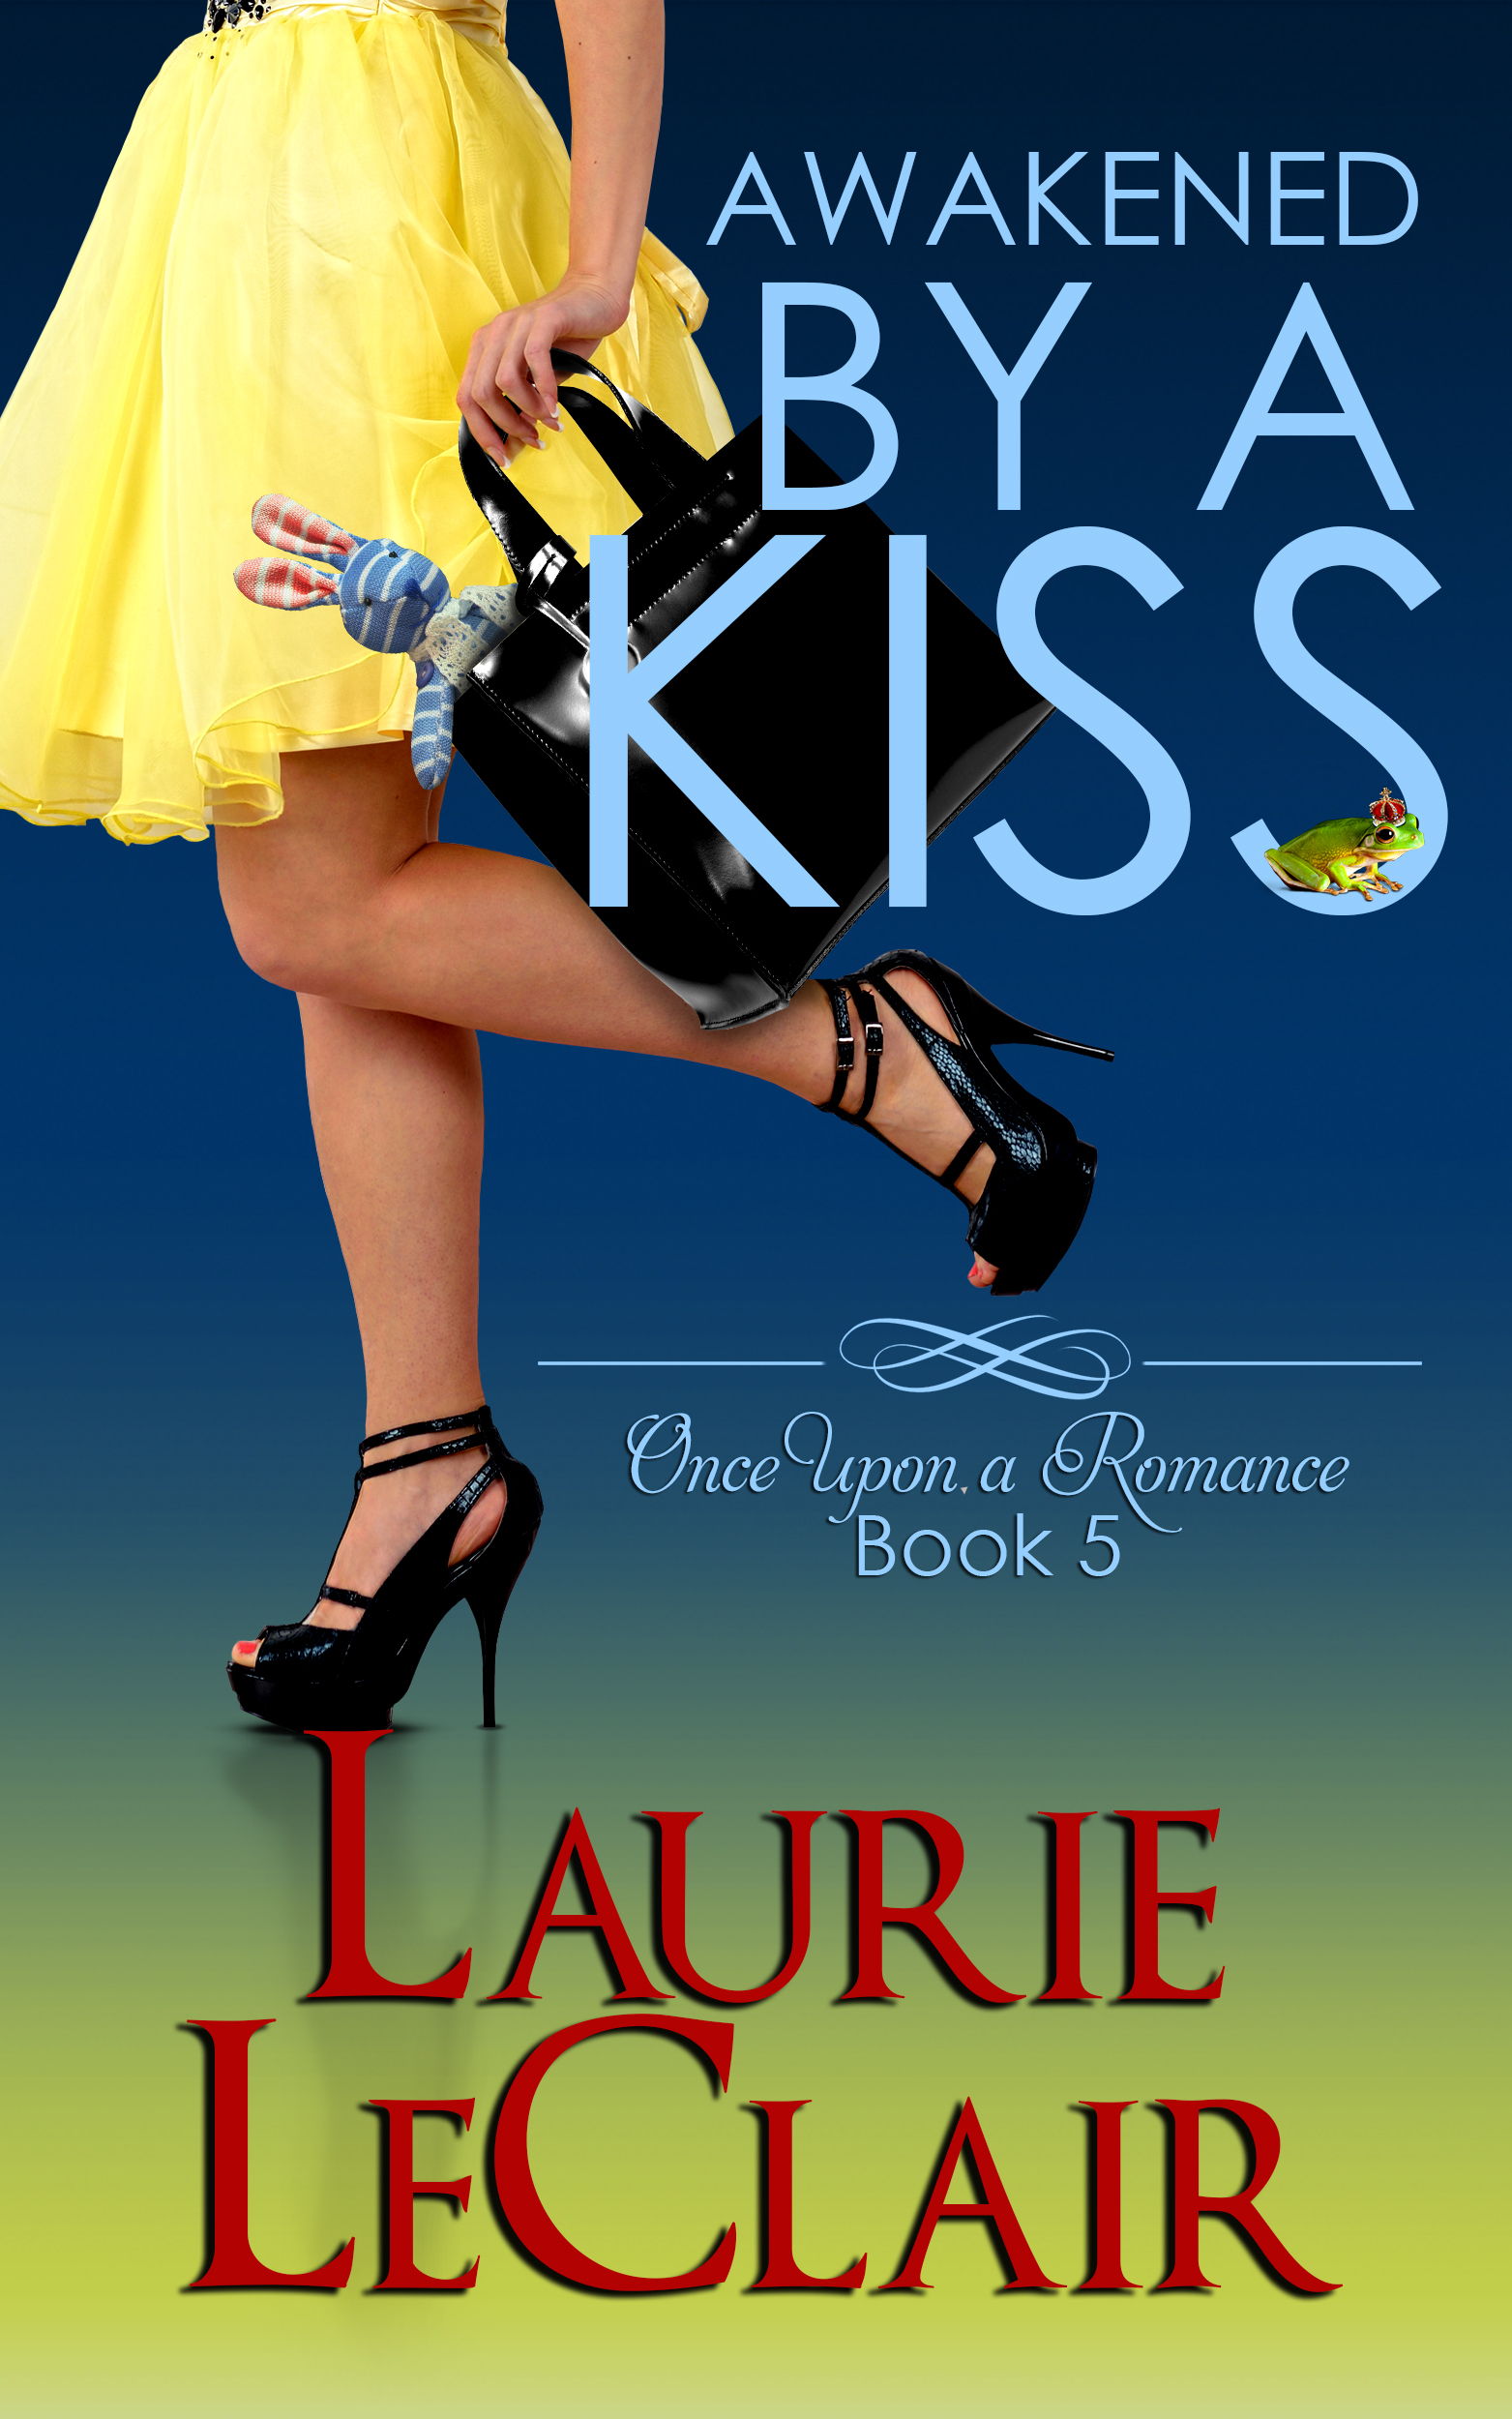 awakened by a kiss by laurie leclair online read